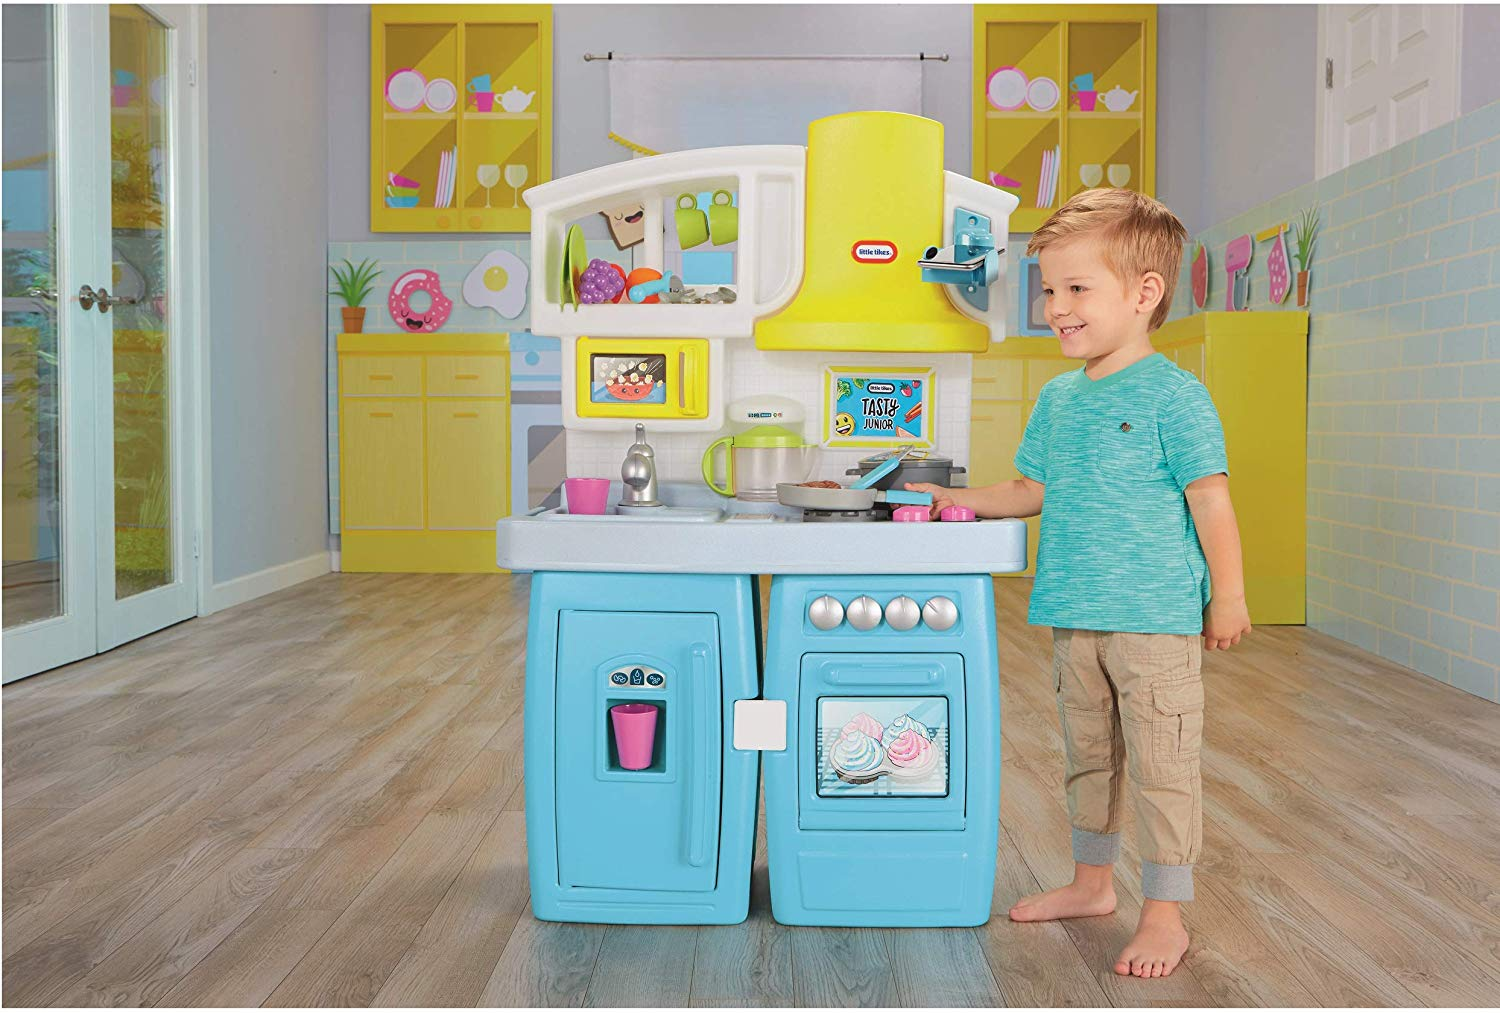 Little Tikes Tasty Jr. Bake 'n Share Role Play Kitchen